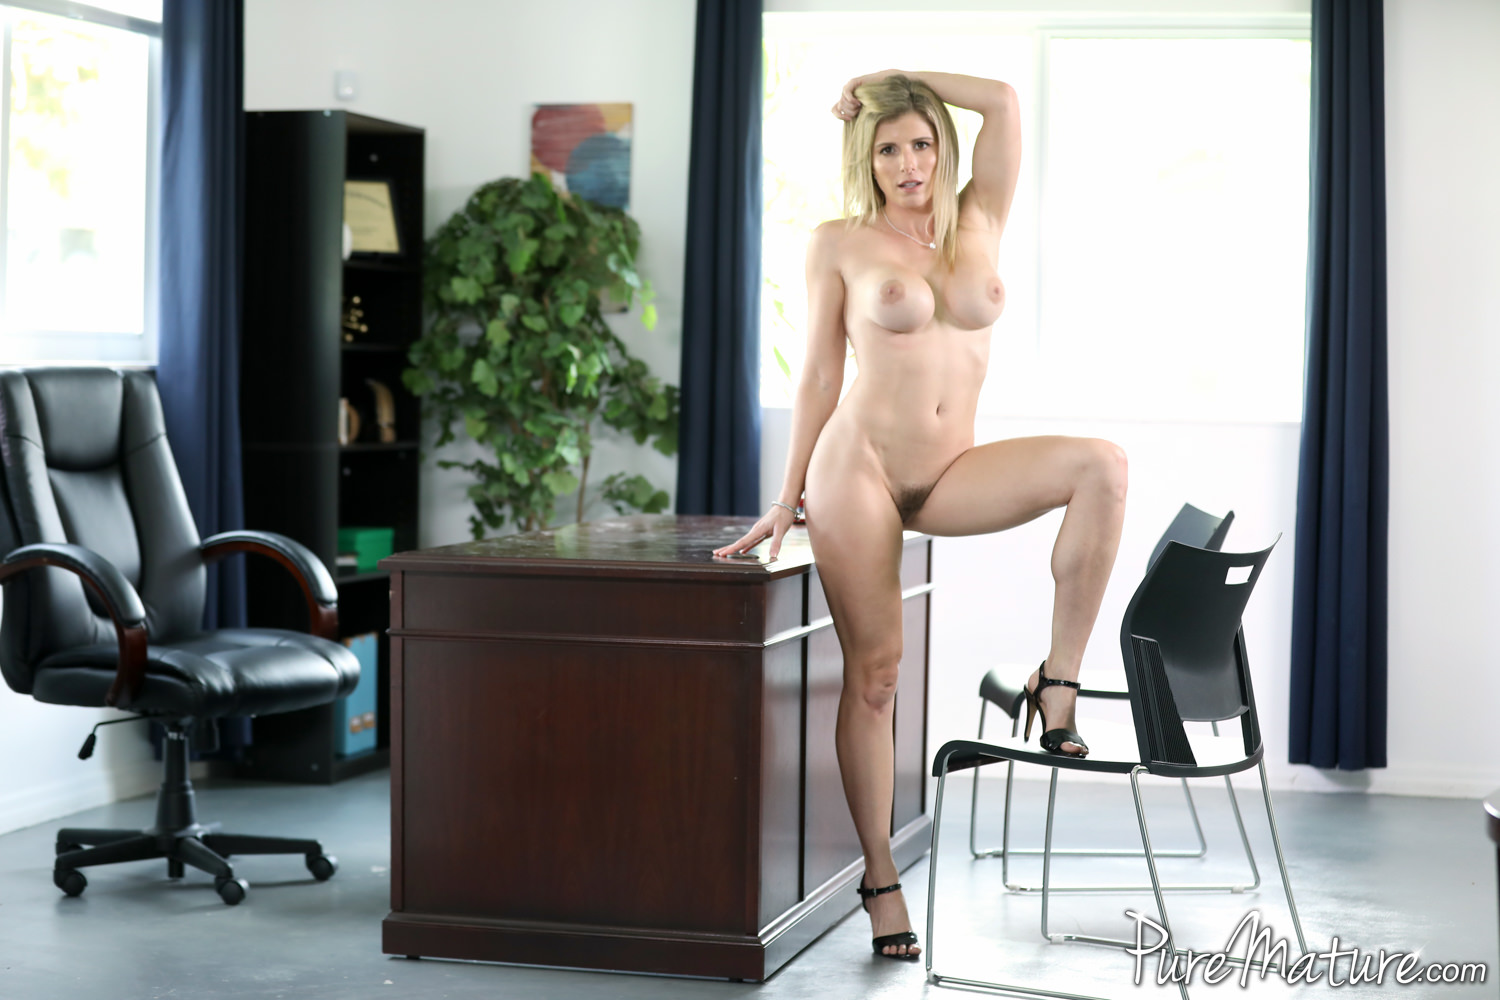 Pussy Pictures Wet Dirty#5